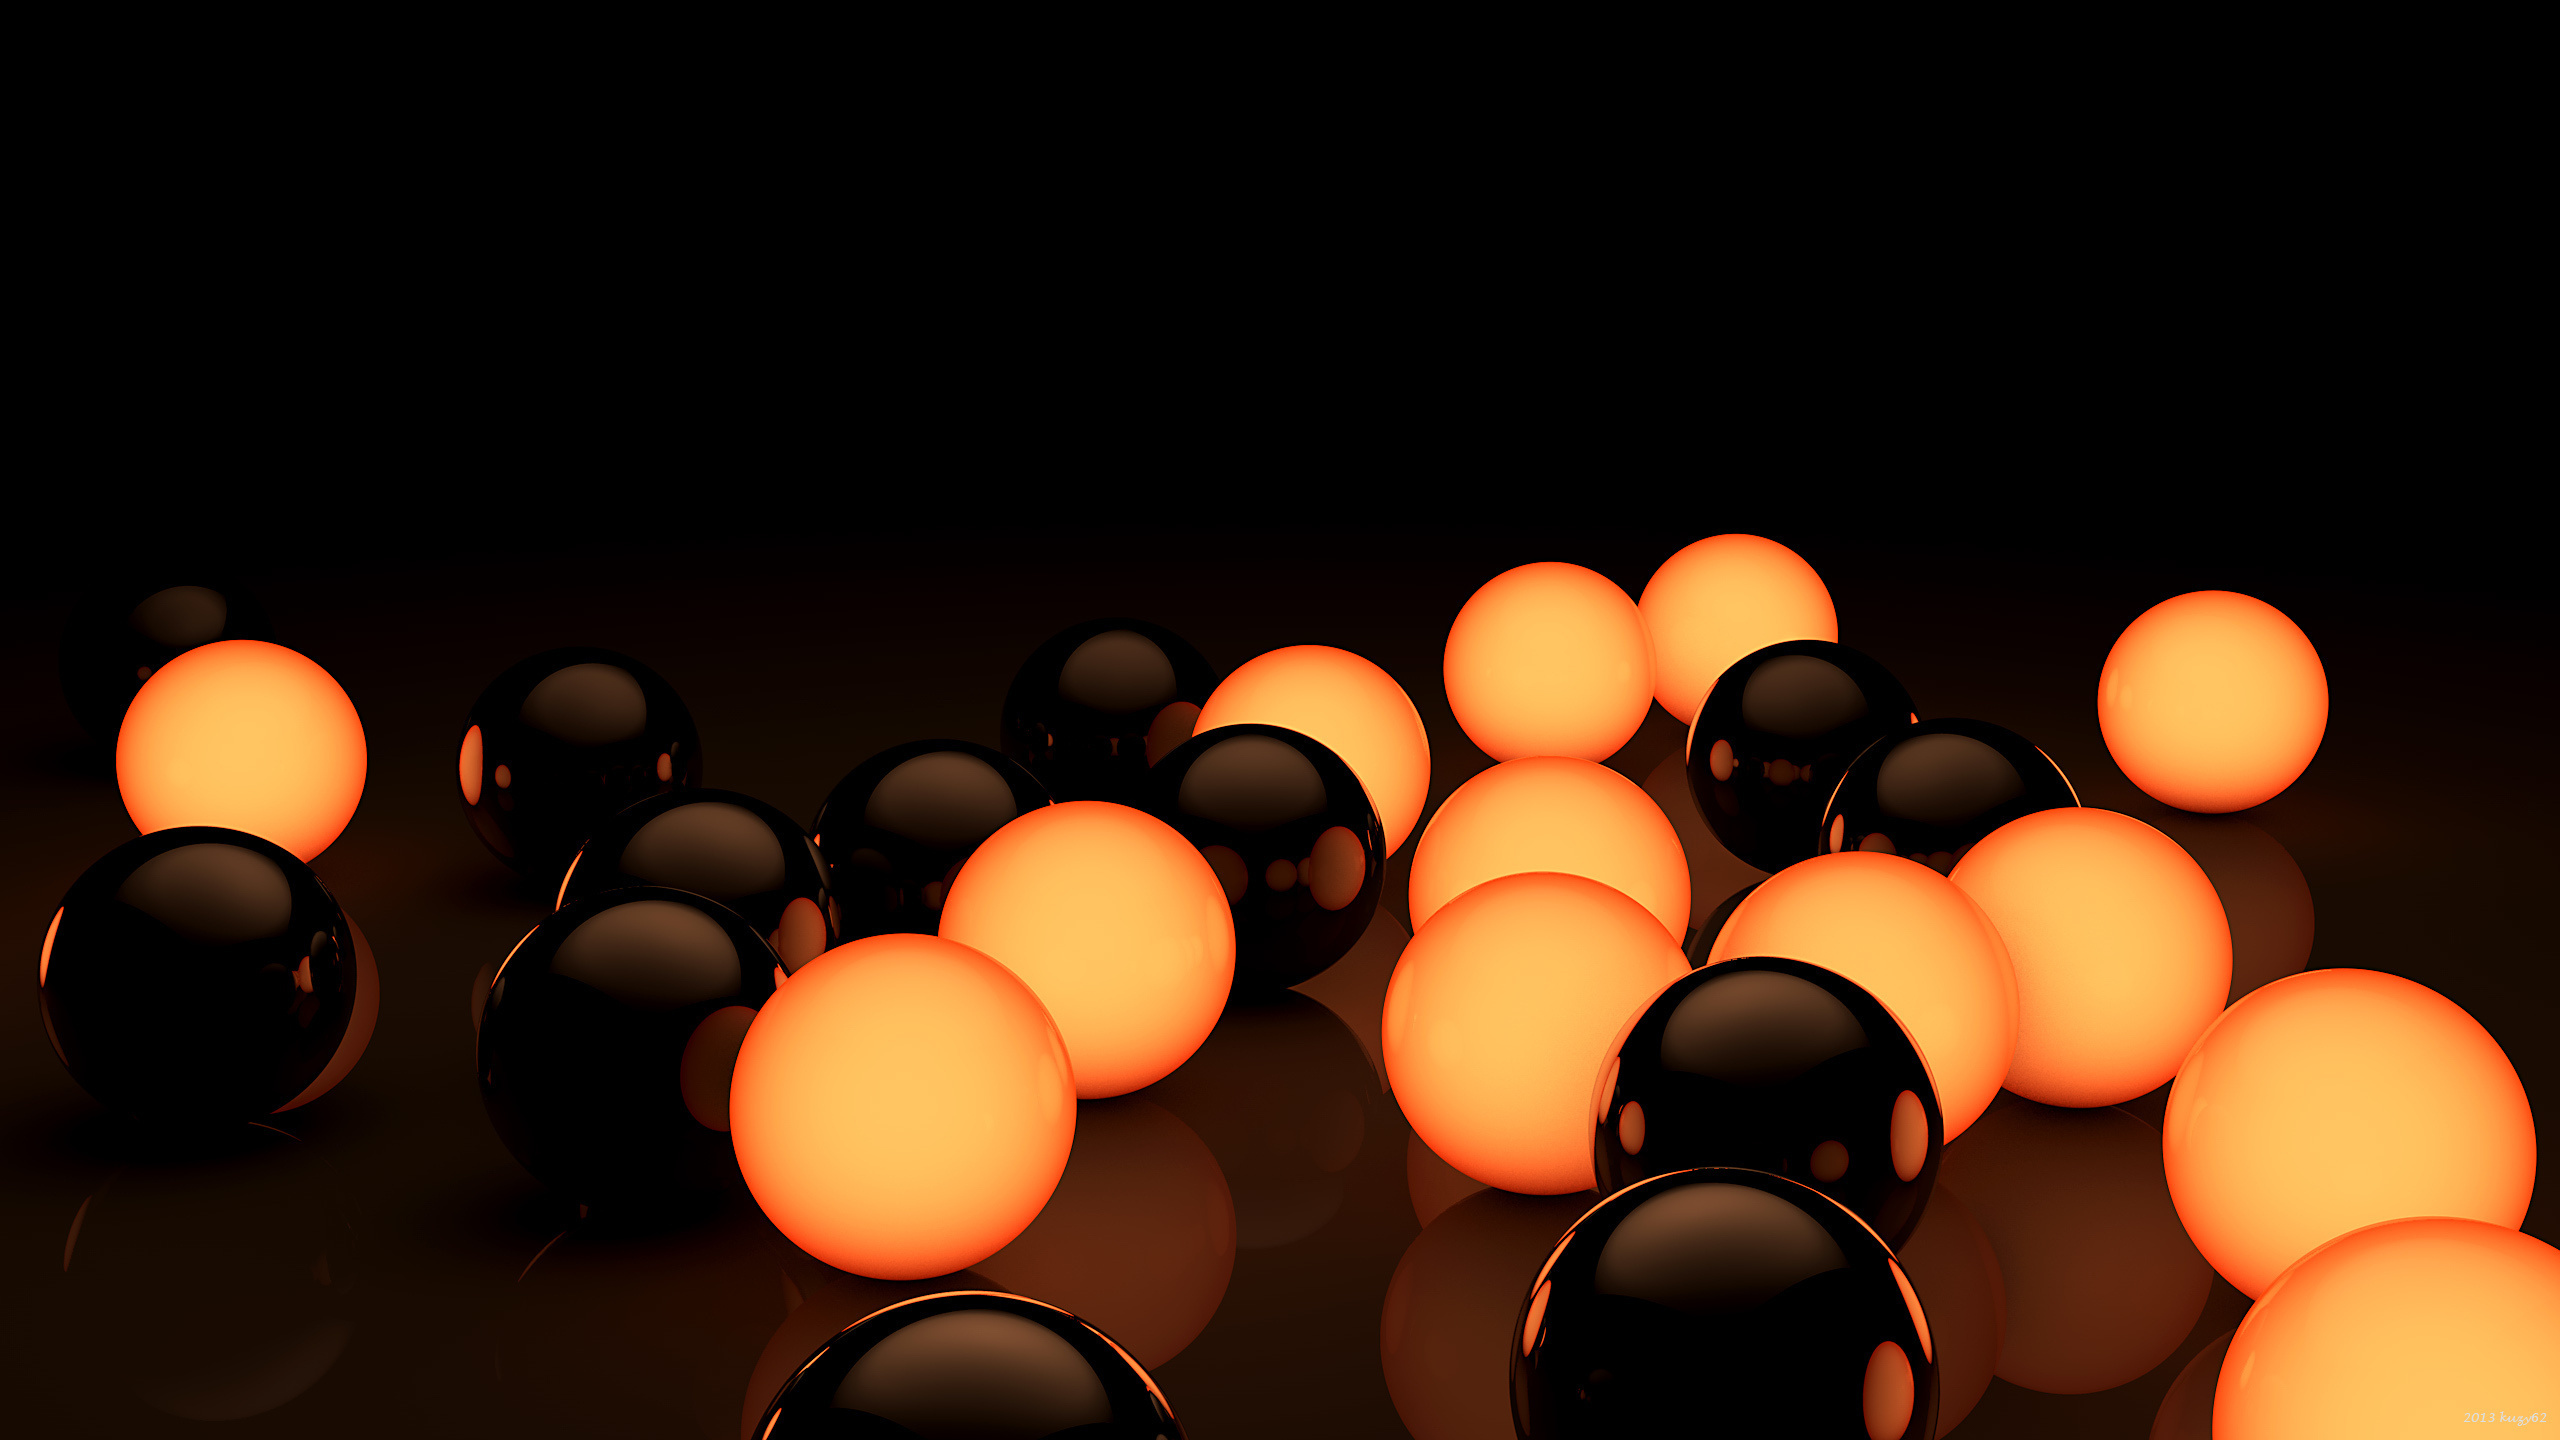 Black-and-Orange-Balls-3D-Wallpaper1